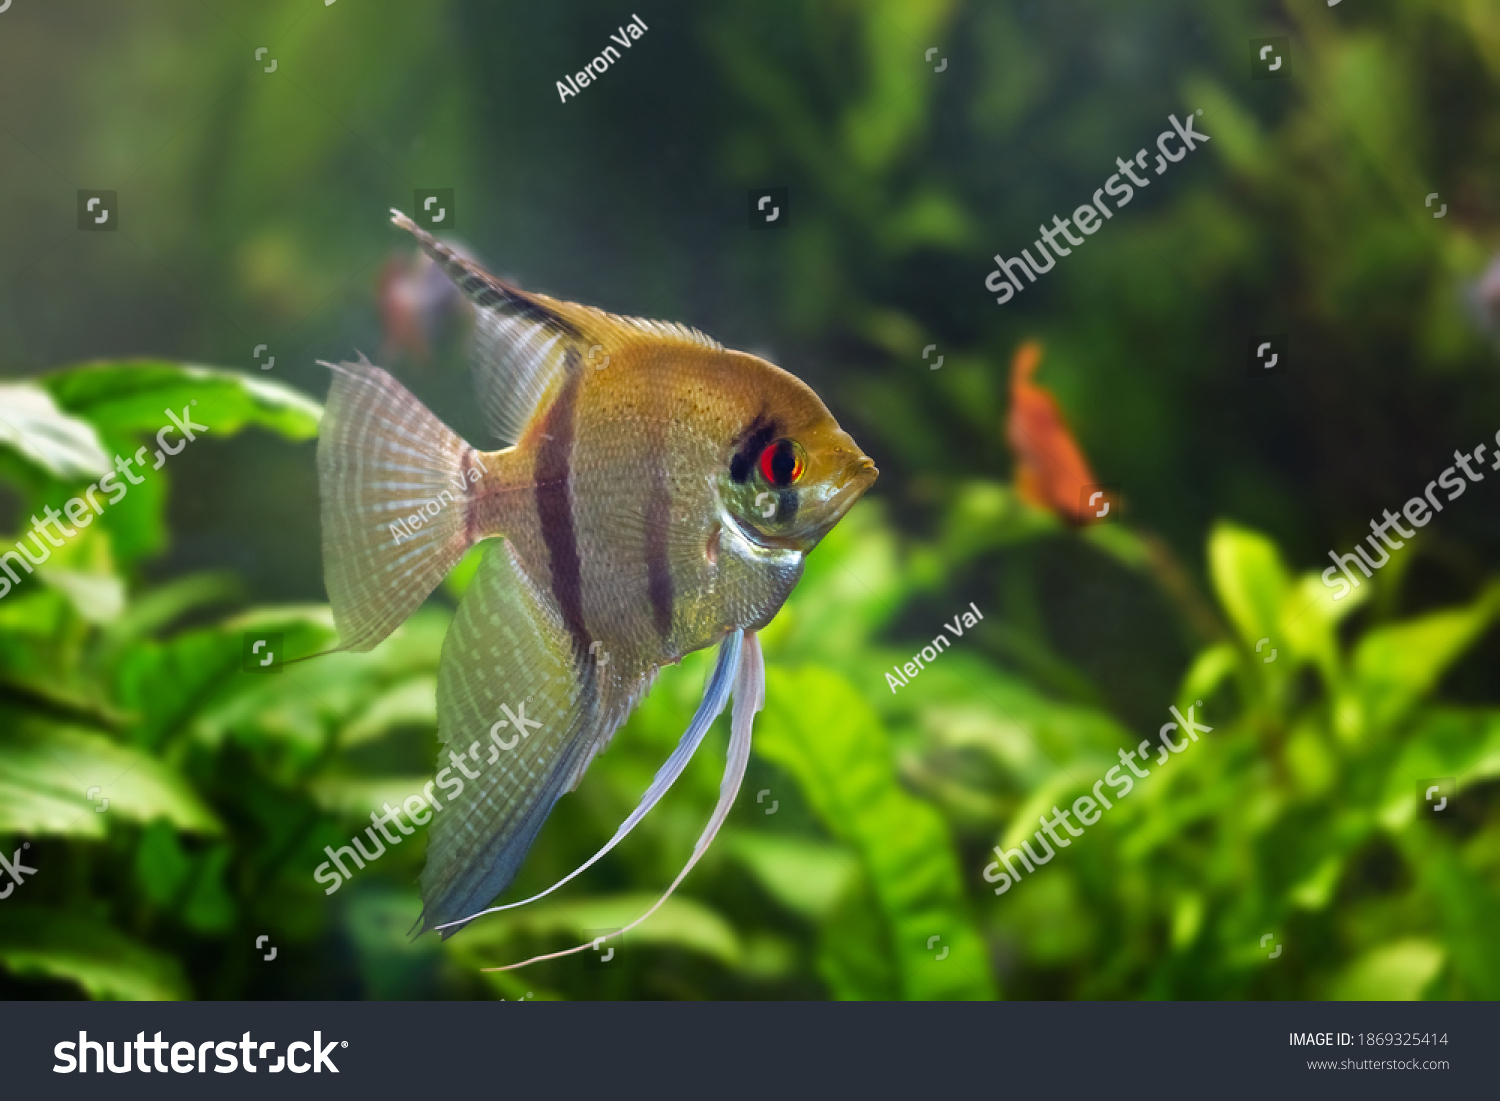 juvenile angelfish, artificial aqua trade breed of wild Pterophyllum scalare cichlid in beautiful coloration with orange eyes, popular ornamental fish from South America blackwater #1869325414